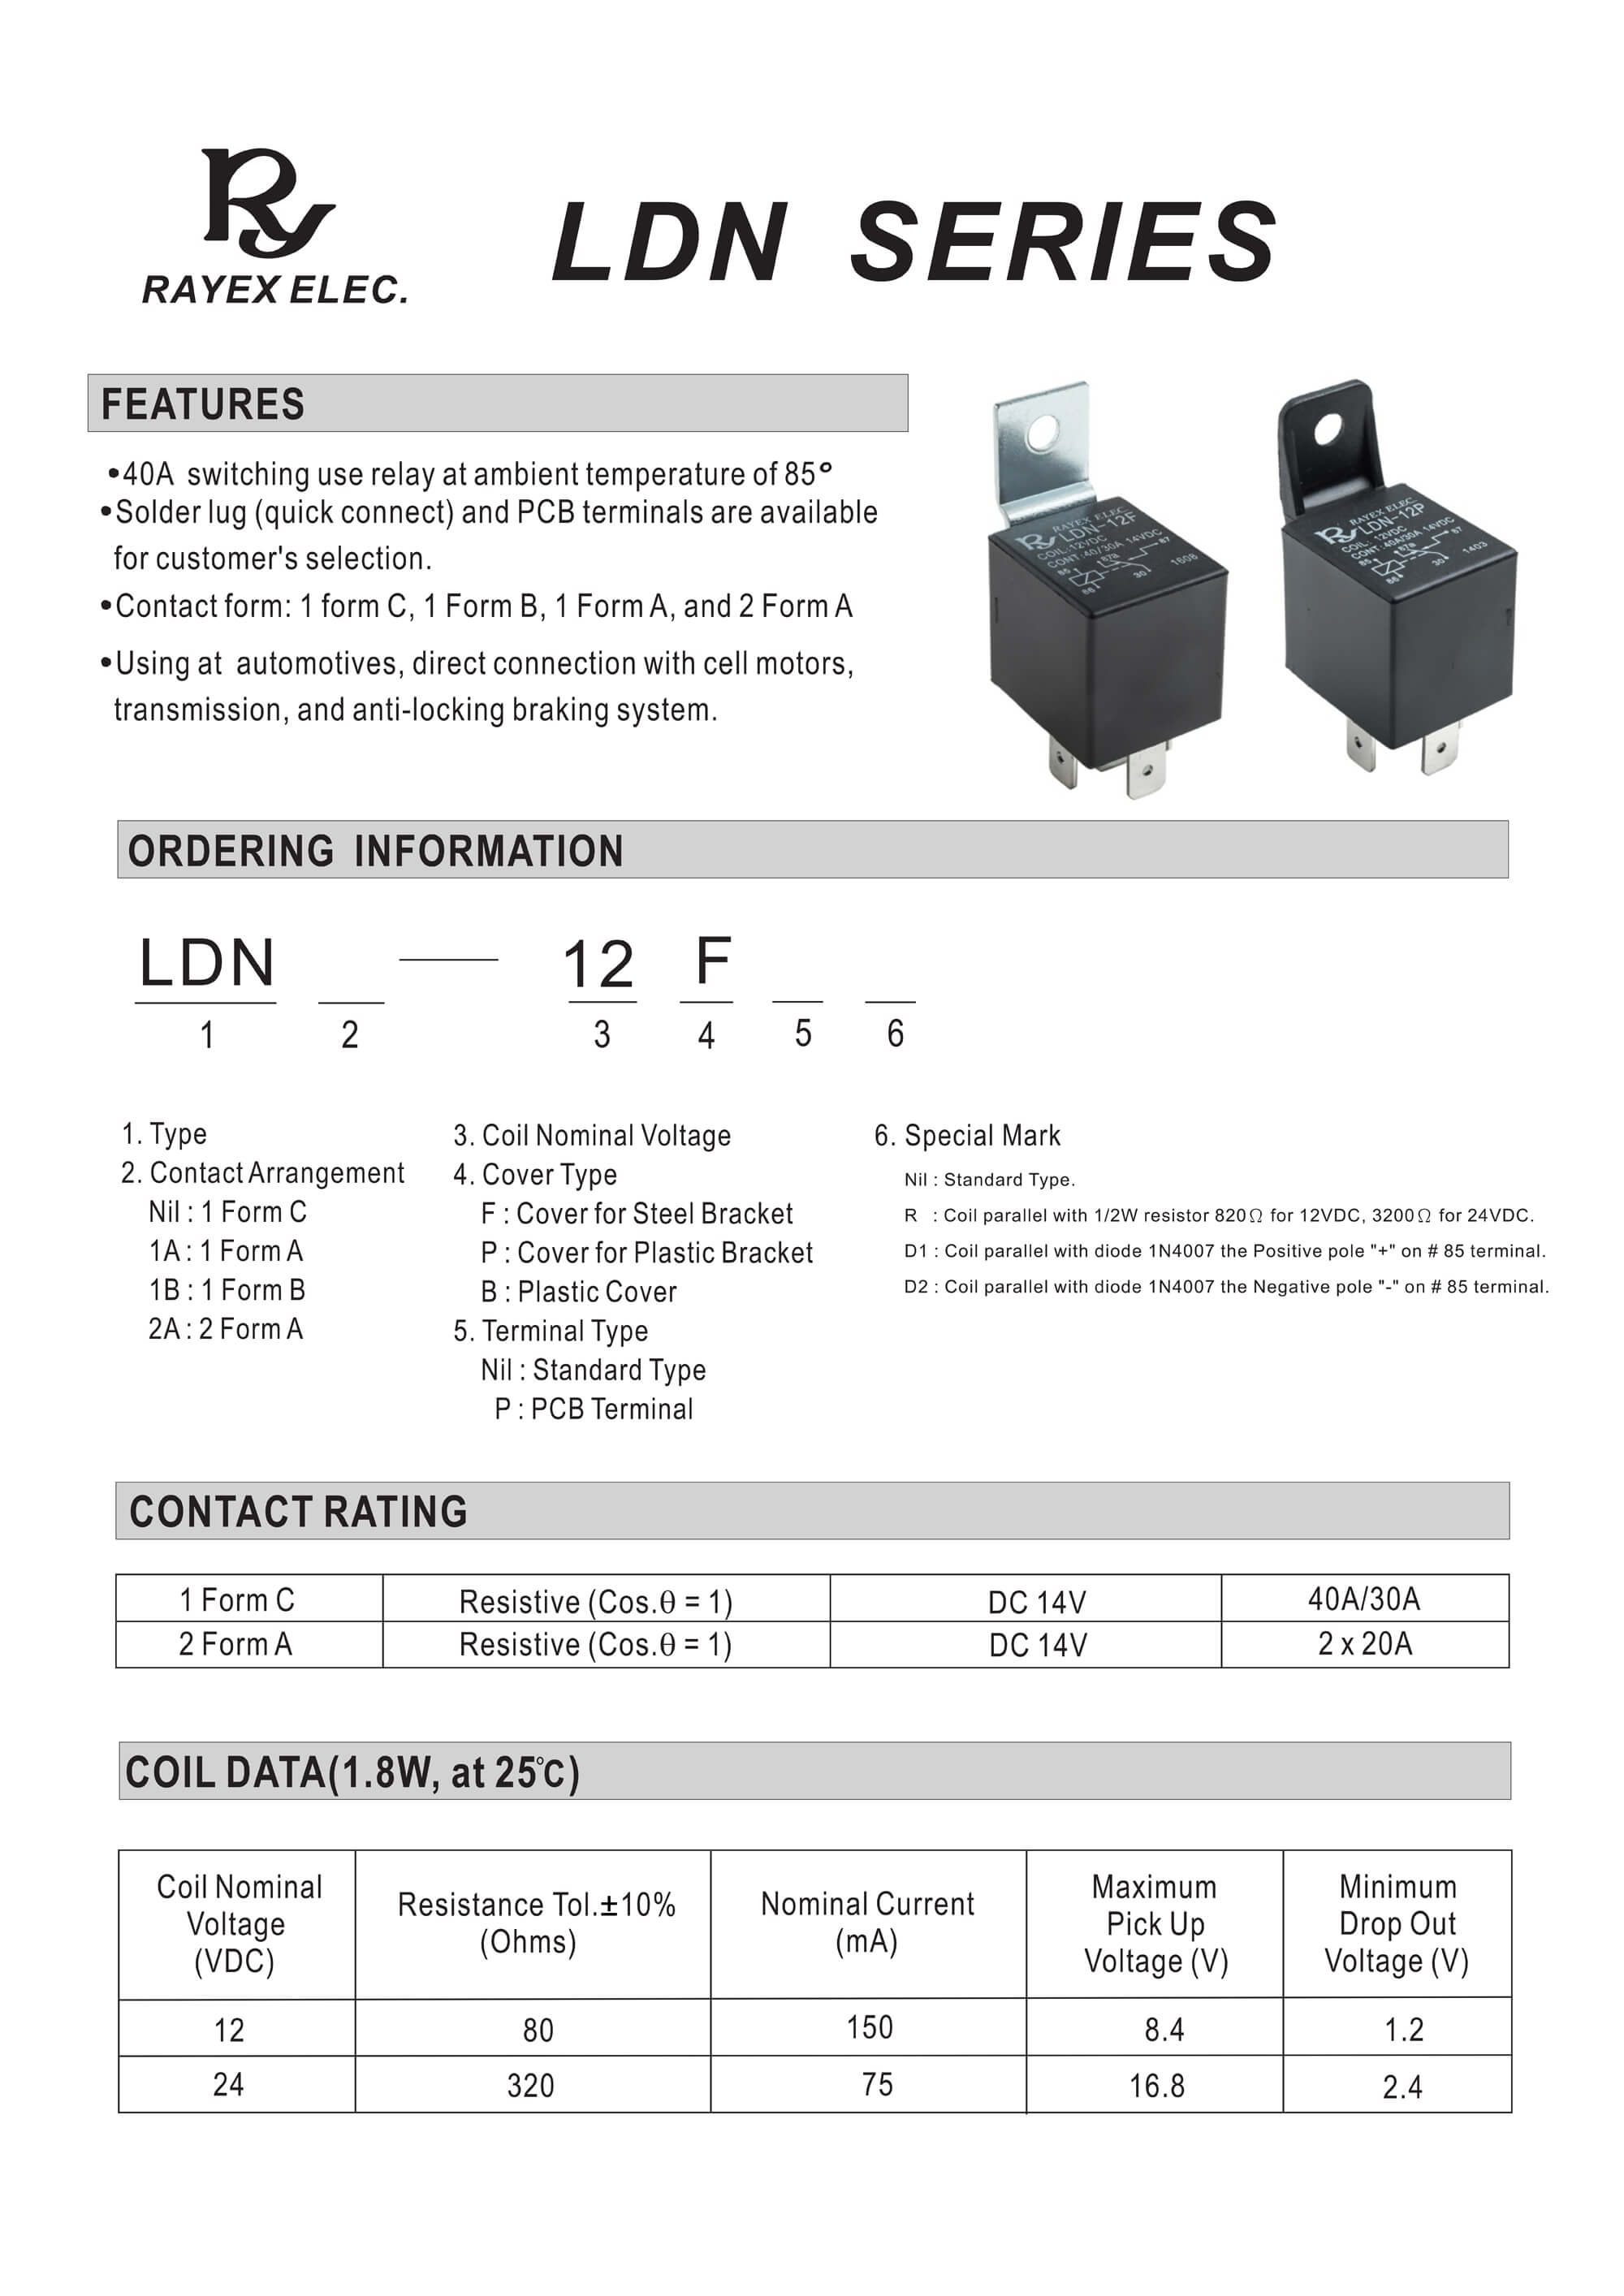 Fancy Relay Terminal Frieze Best Images for wiring diagram